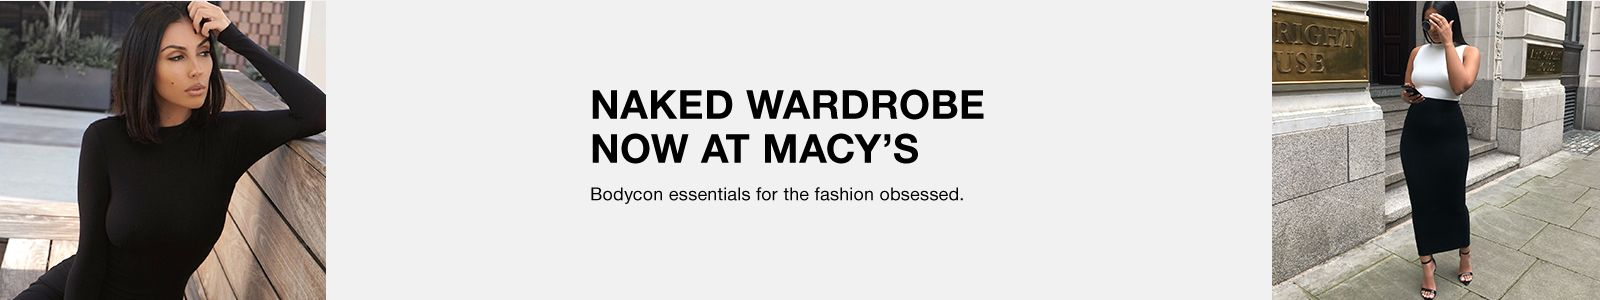 Naked Wardrobe Now at Macy's